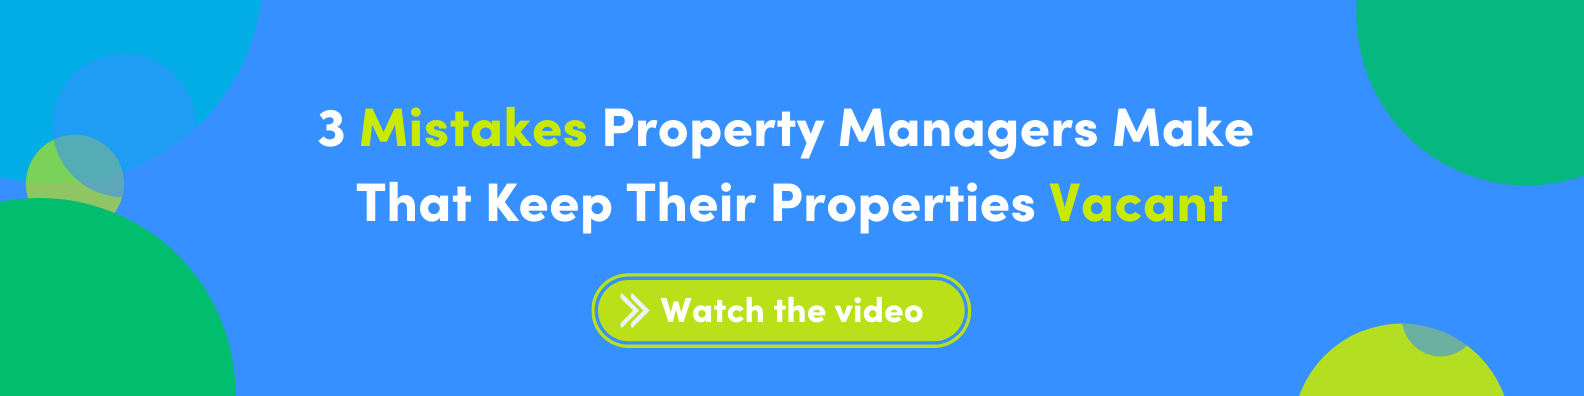 3 mistakes property managers make that keep their properties vacant webinar